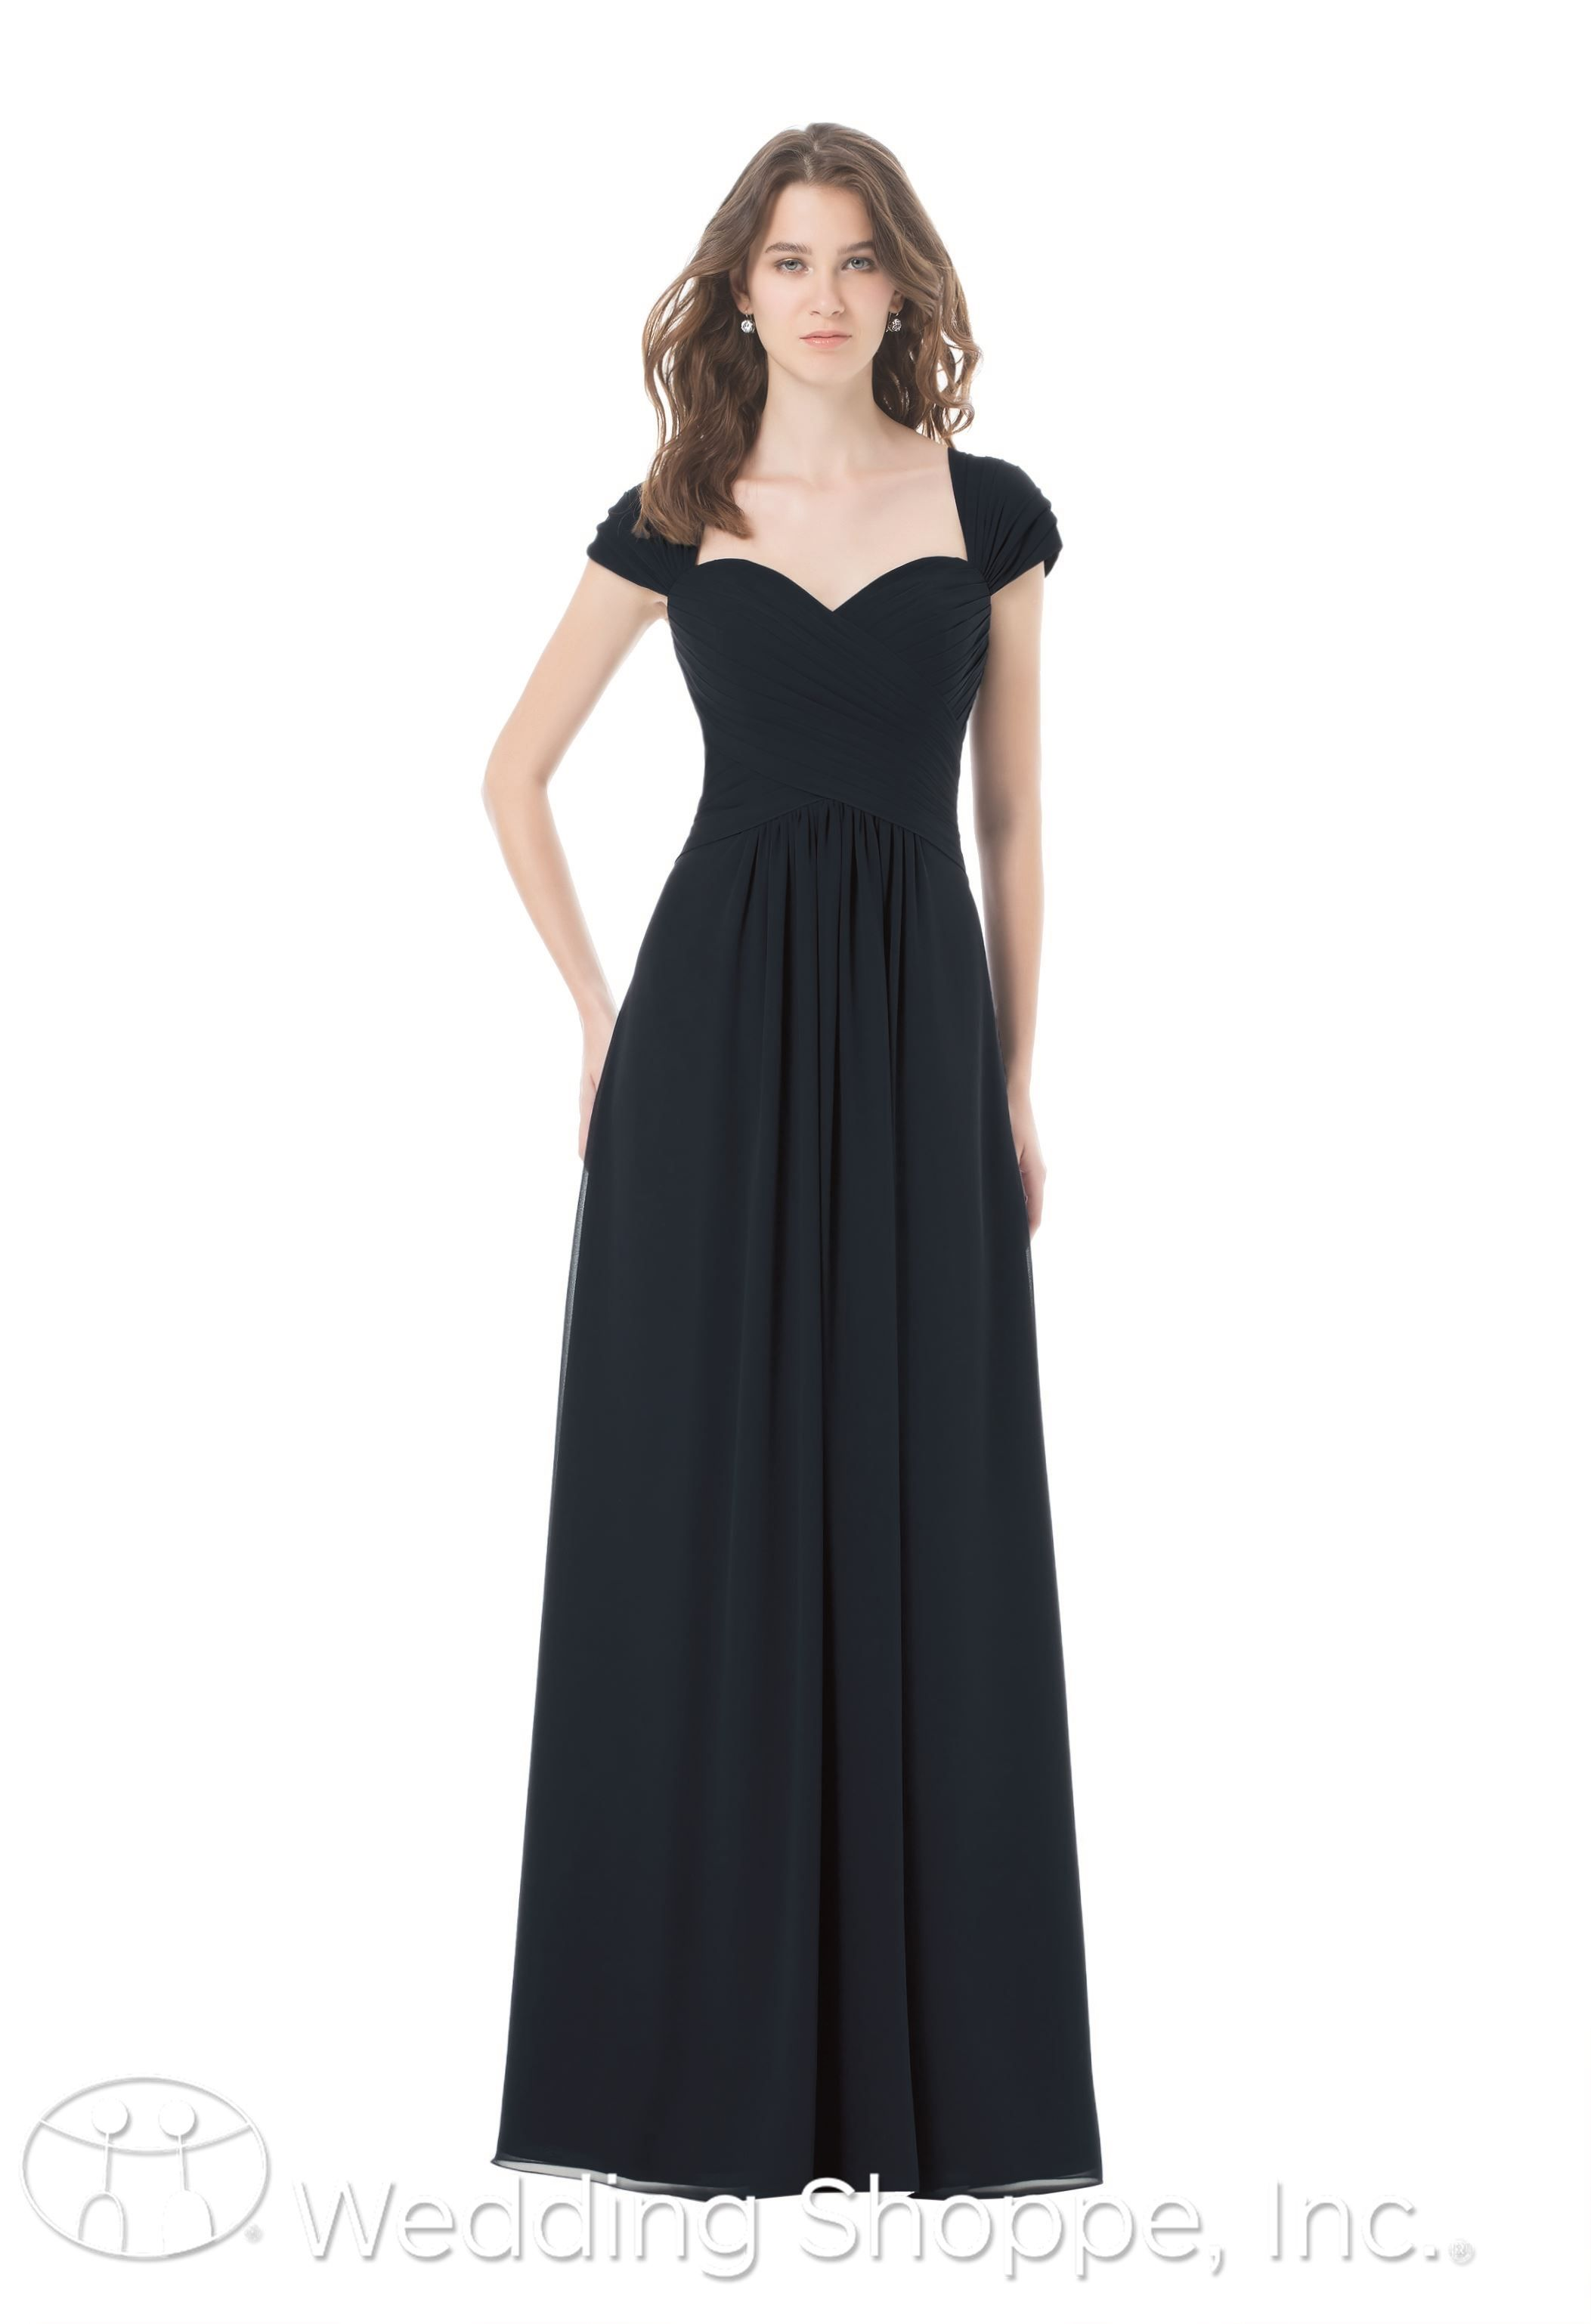 Bill levkoff bridesmaid dress 496 mother of the bride dresses bill levkoff bridesmaid dress 496 ombrellifo Images